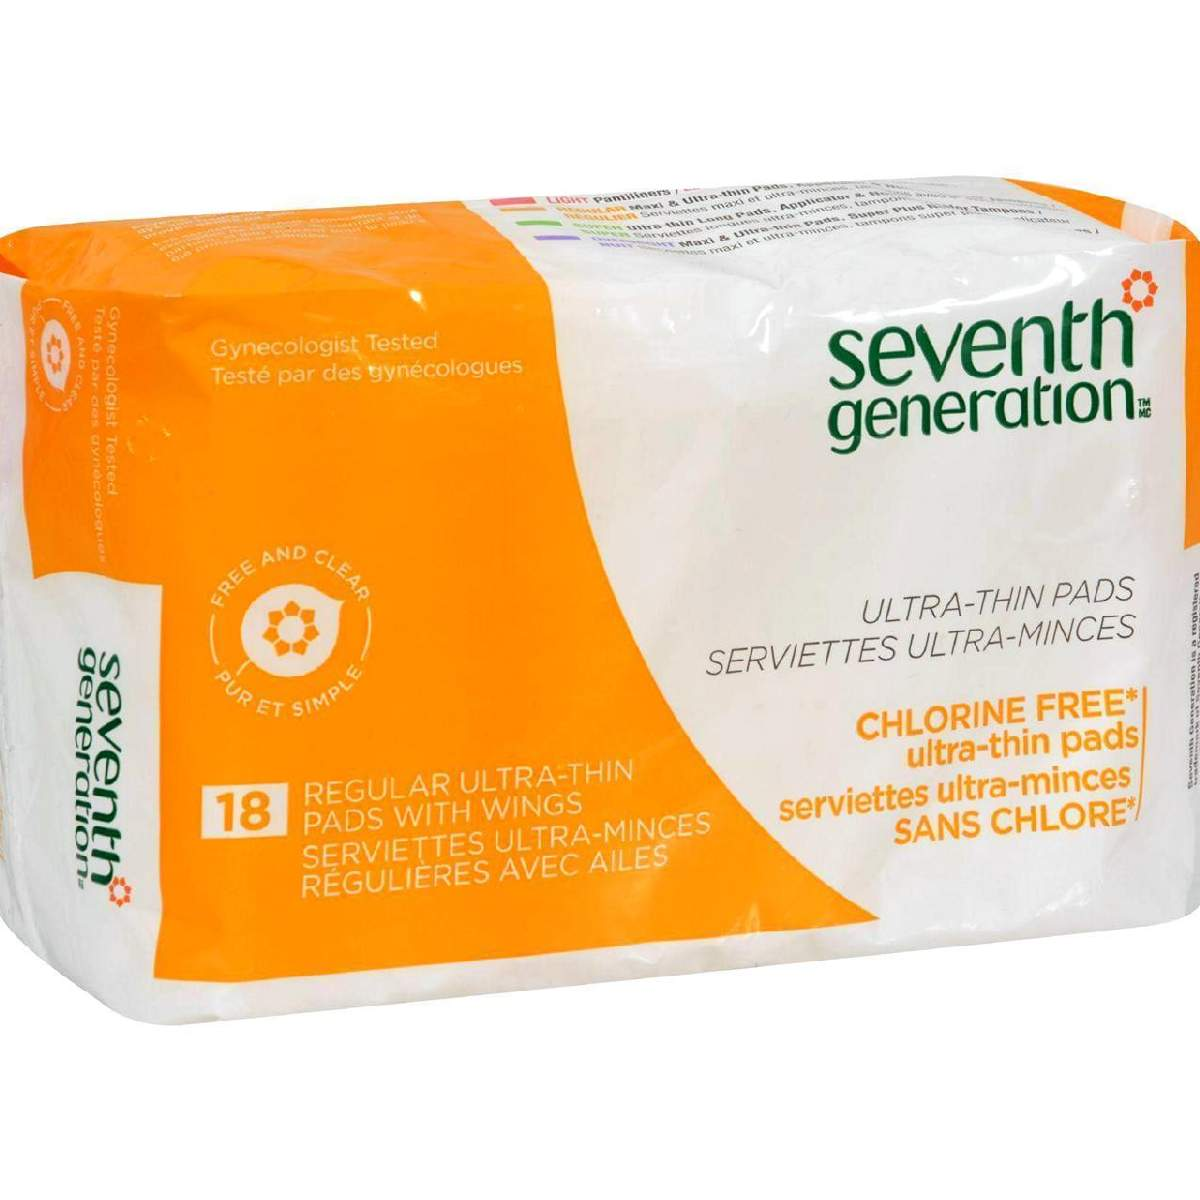 Seventh Generation Ultra Thin Maxi Pads - Chlorine Free - Regular With Wings - 18